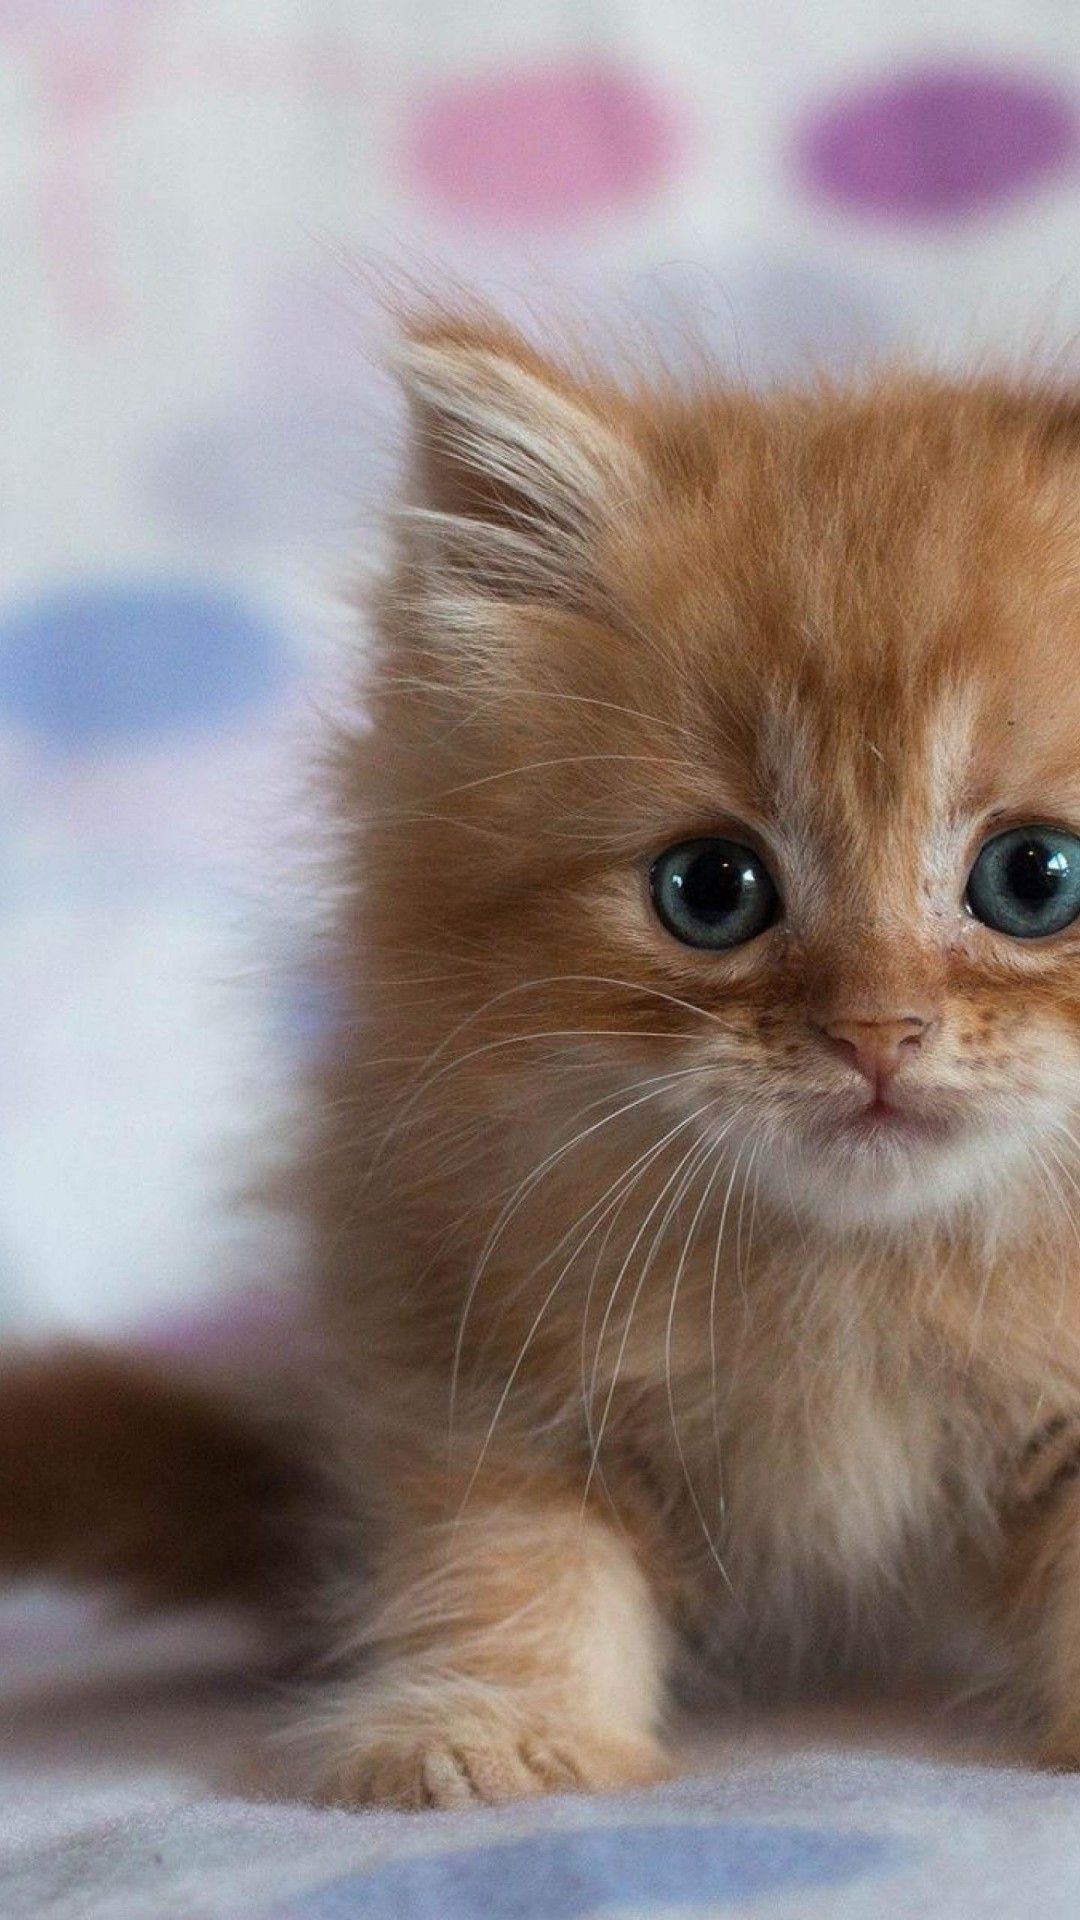 Kitty Cat Collection See All Wallpapers Wallpapers Background Animals Cat Pics Hd Cat Wallpaper Funny Cat Wallpaper